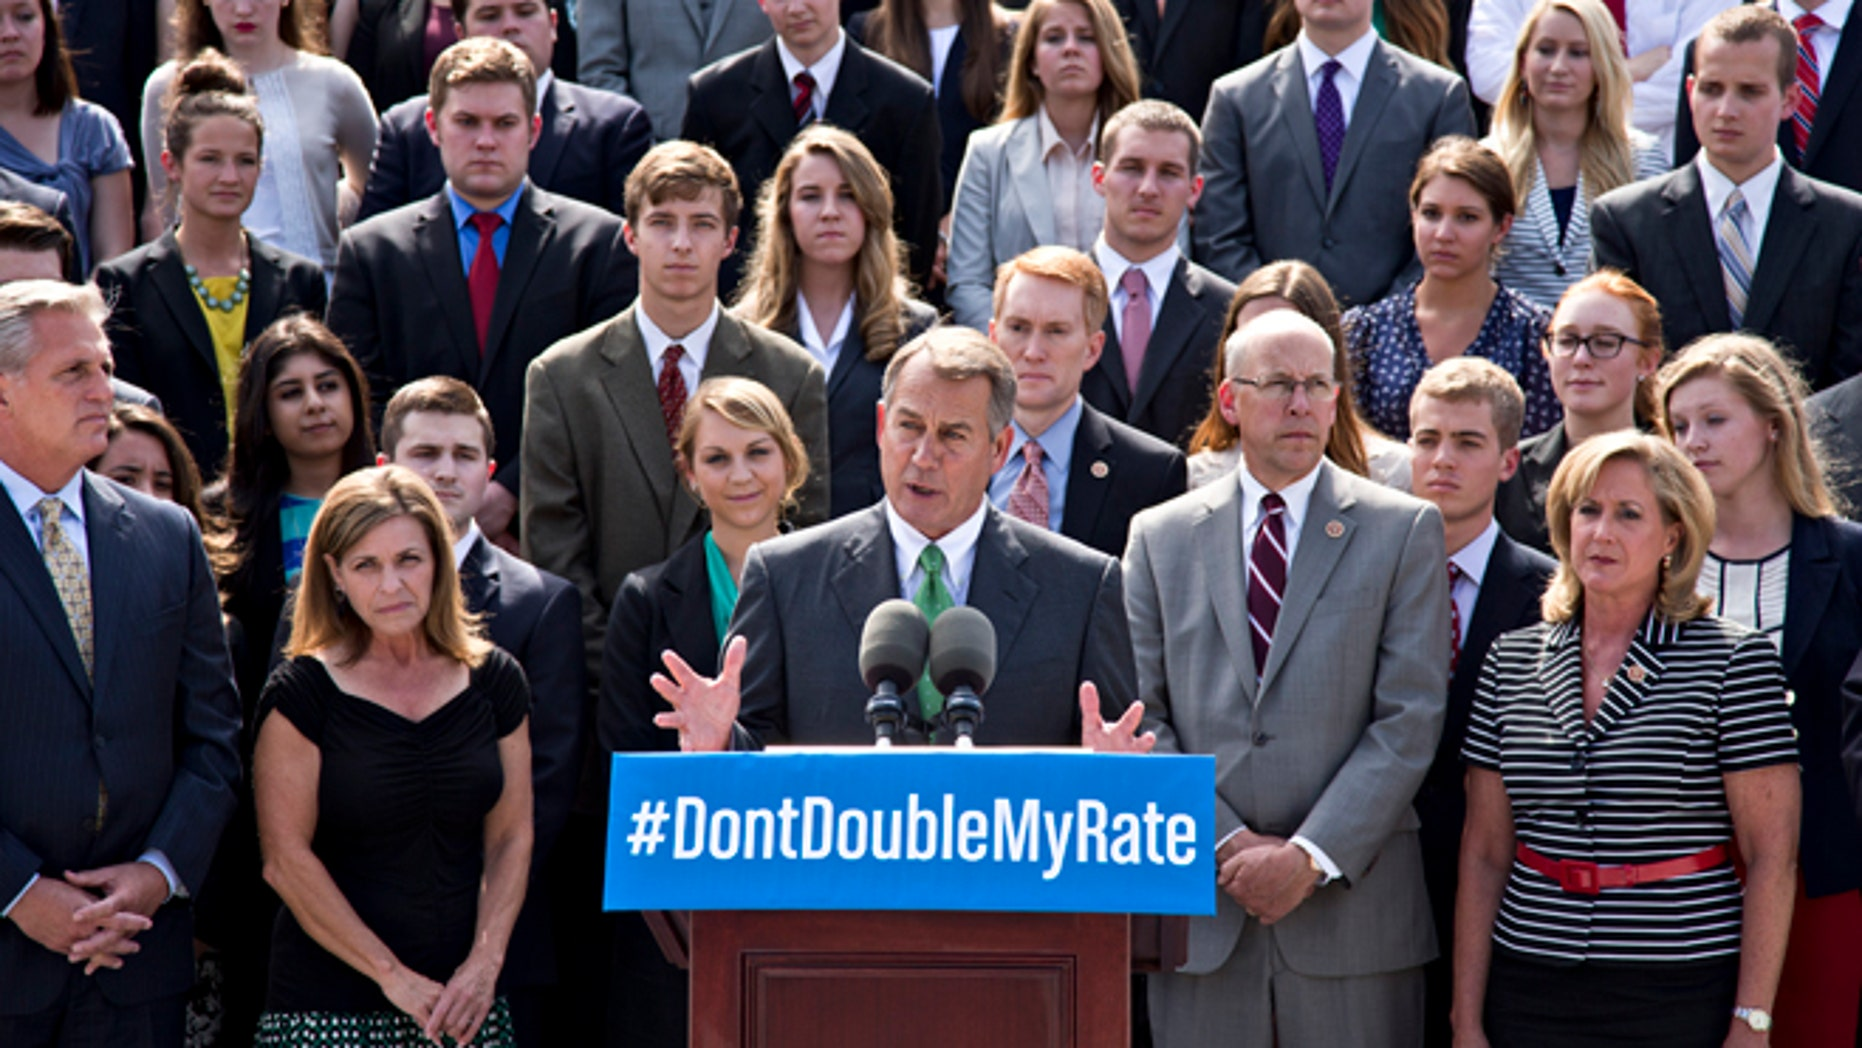 In this July 8, 2013, photo, with a backdrop of college students on the step of the House of Representatives, Speaker of the House John Boehner, R-Ohio, center, and GOP leaders talk about the politics of federal student loan rates which doubled on July 1, at the Capitol in Washington. (AP Photo/J. Scott Applewhite)